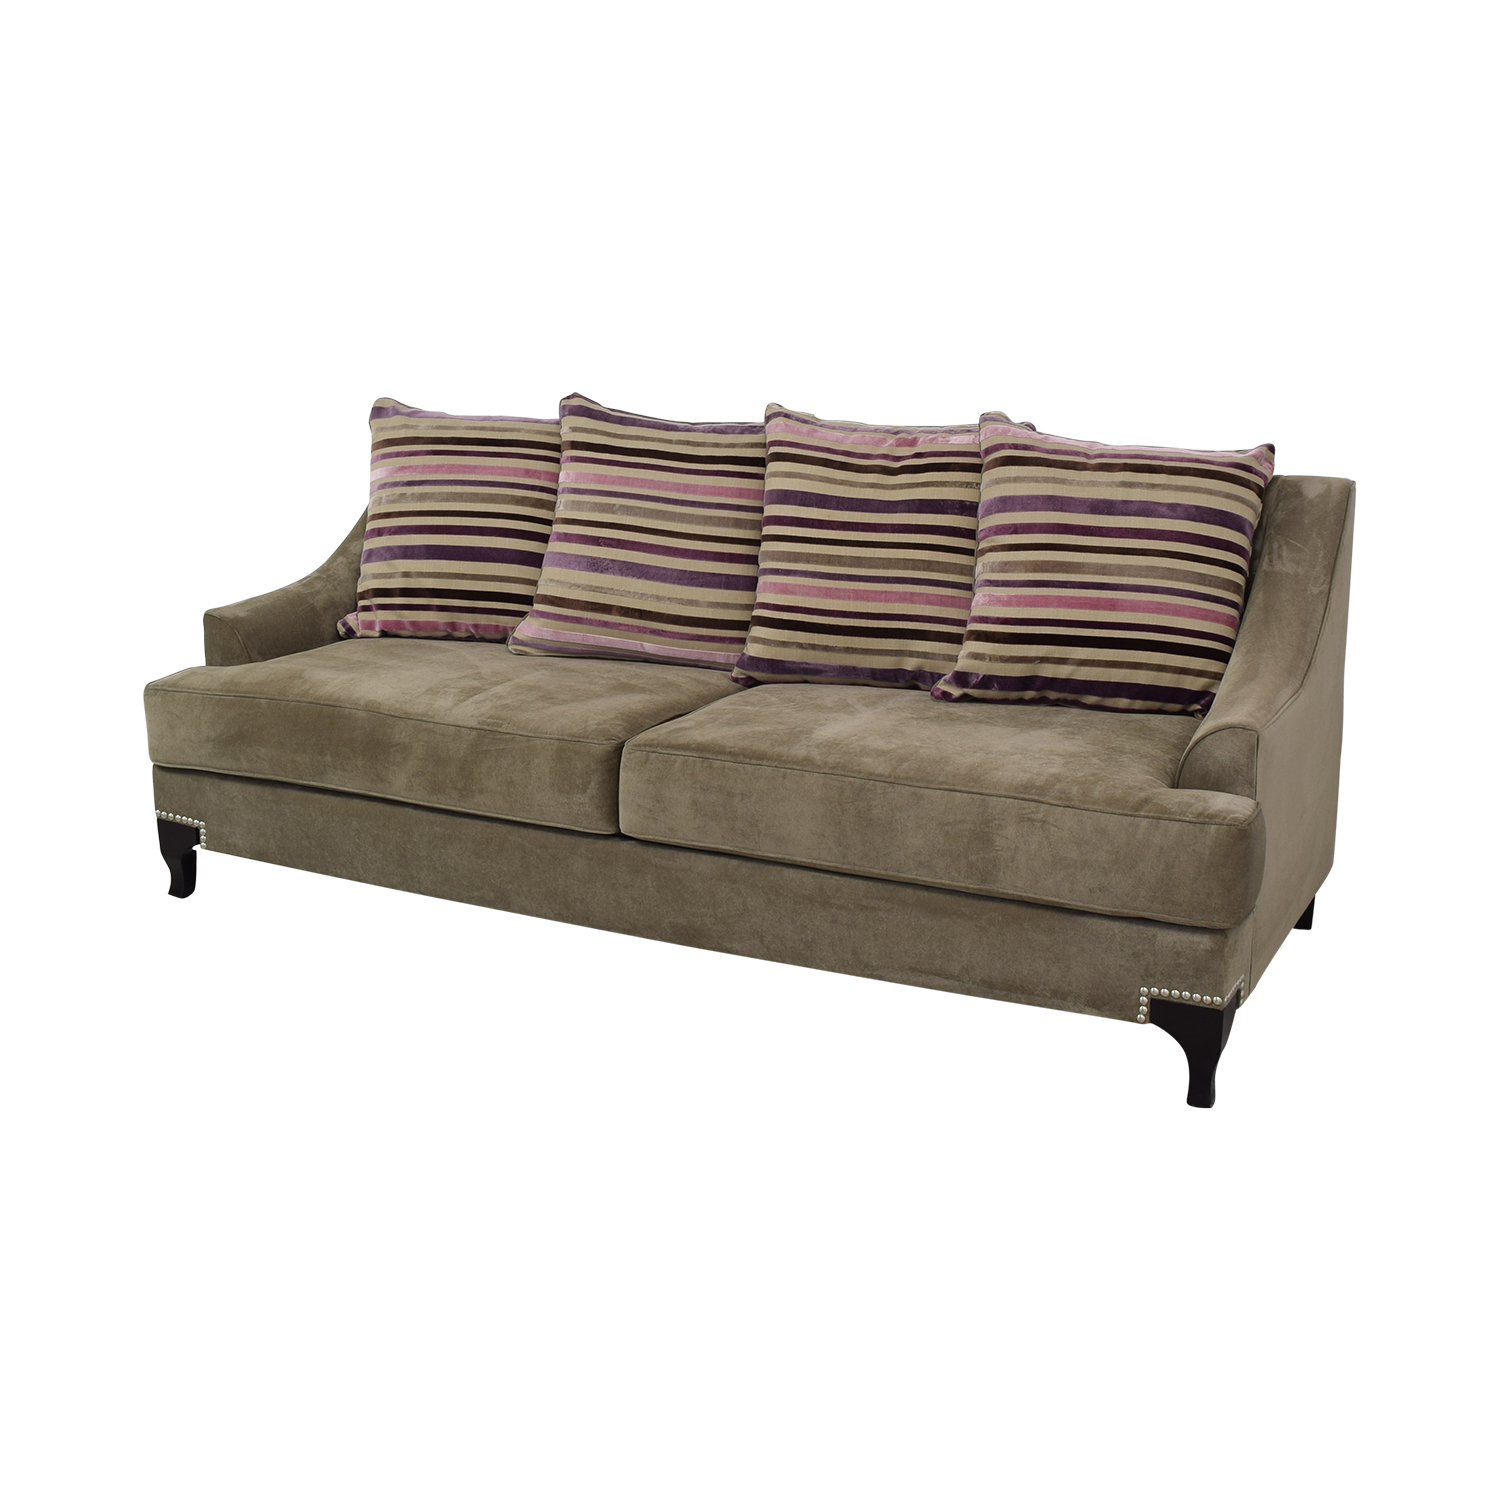 71 Off Furniture Of America Furniture Of America Classic Sofa Sofas